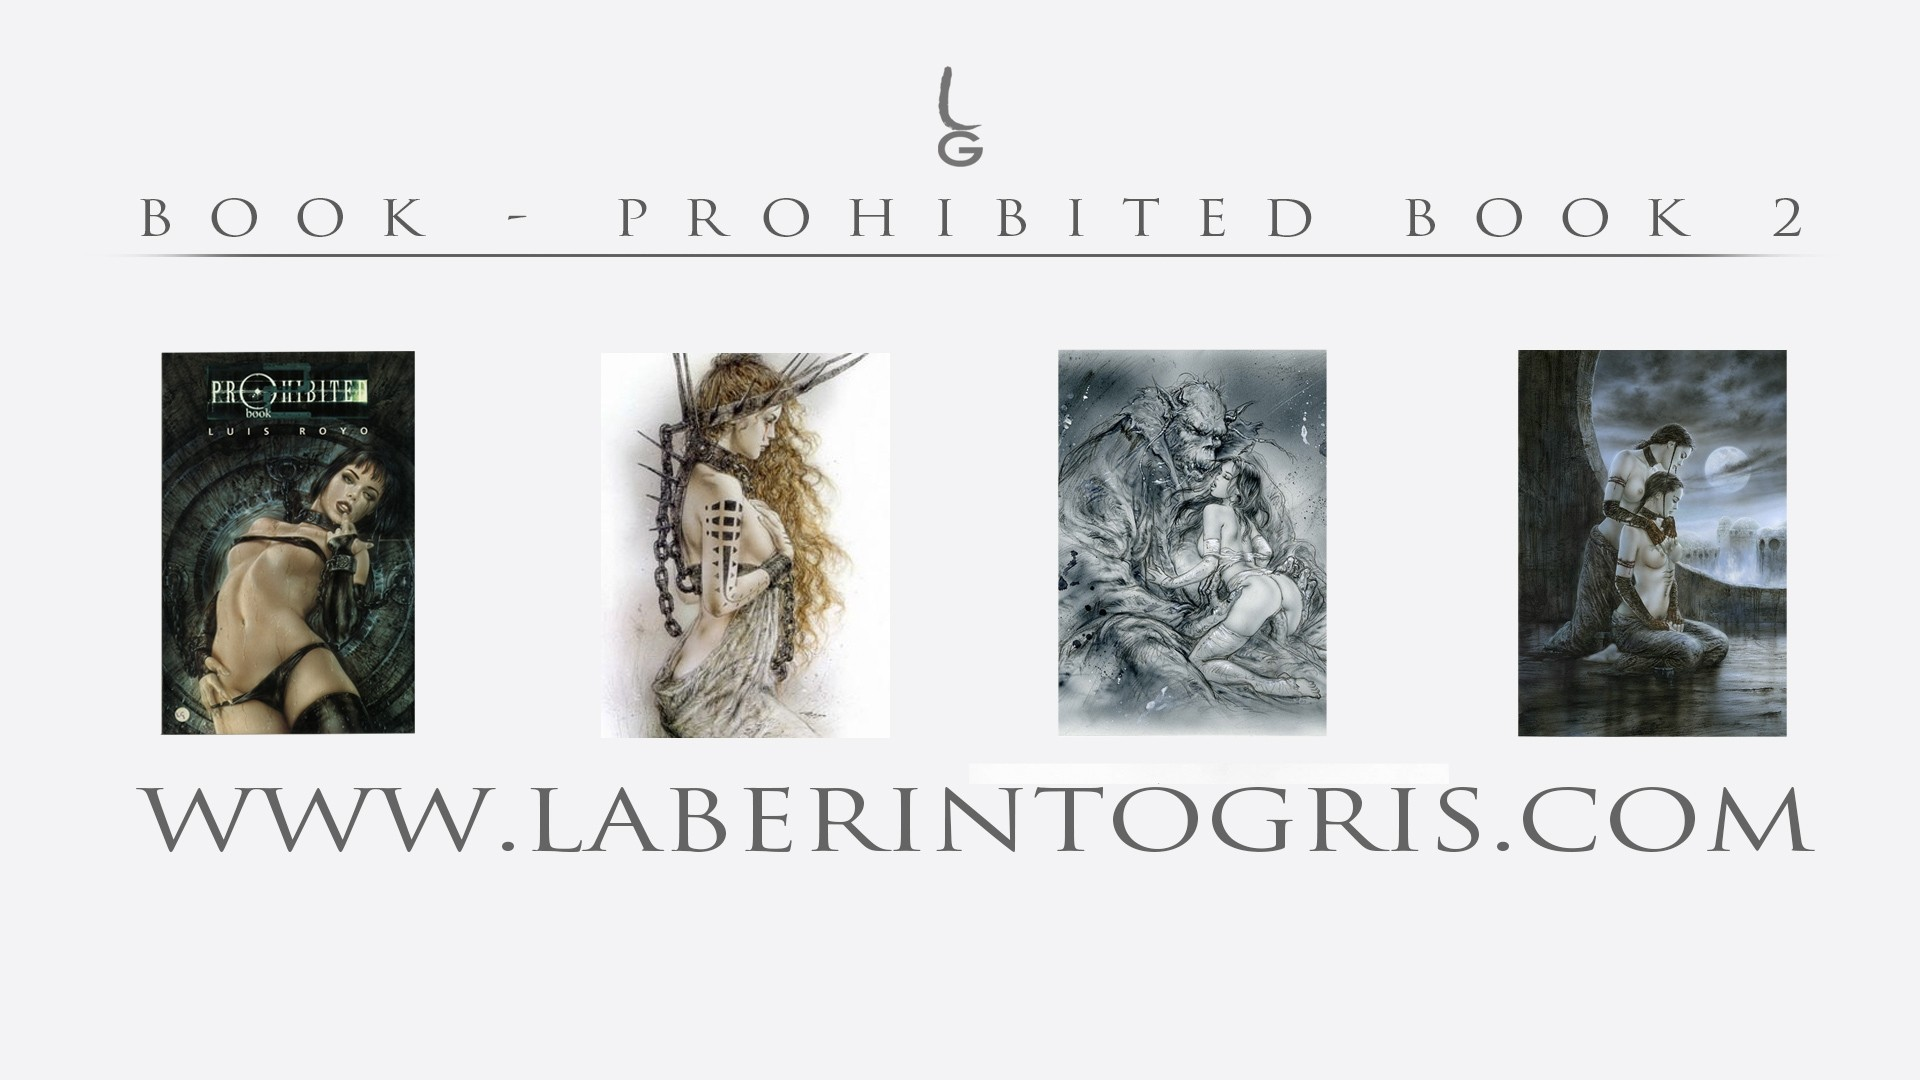 Prohibited book II